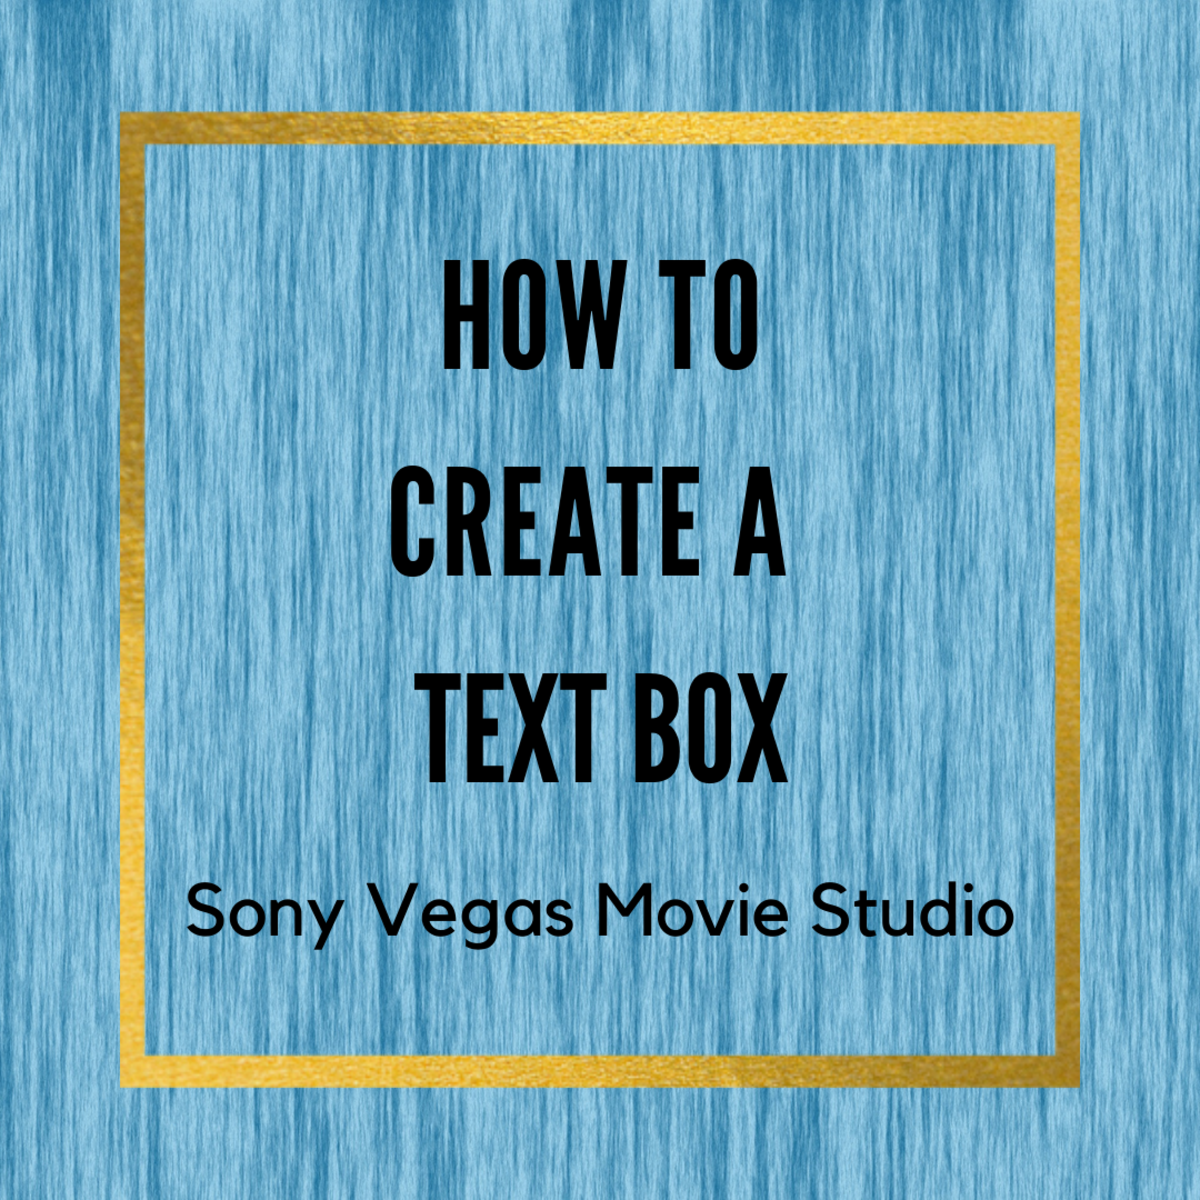 How to Create a Text Box in Sony Vegas Movie Studio